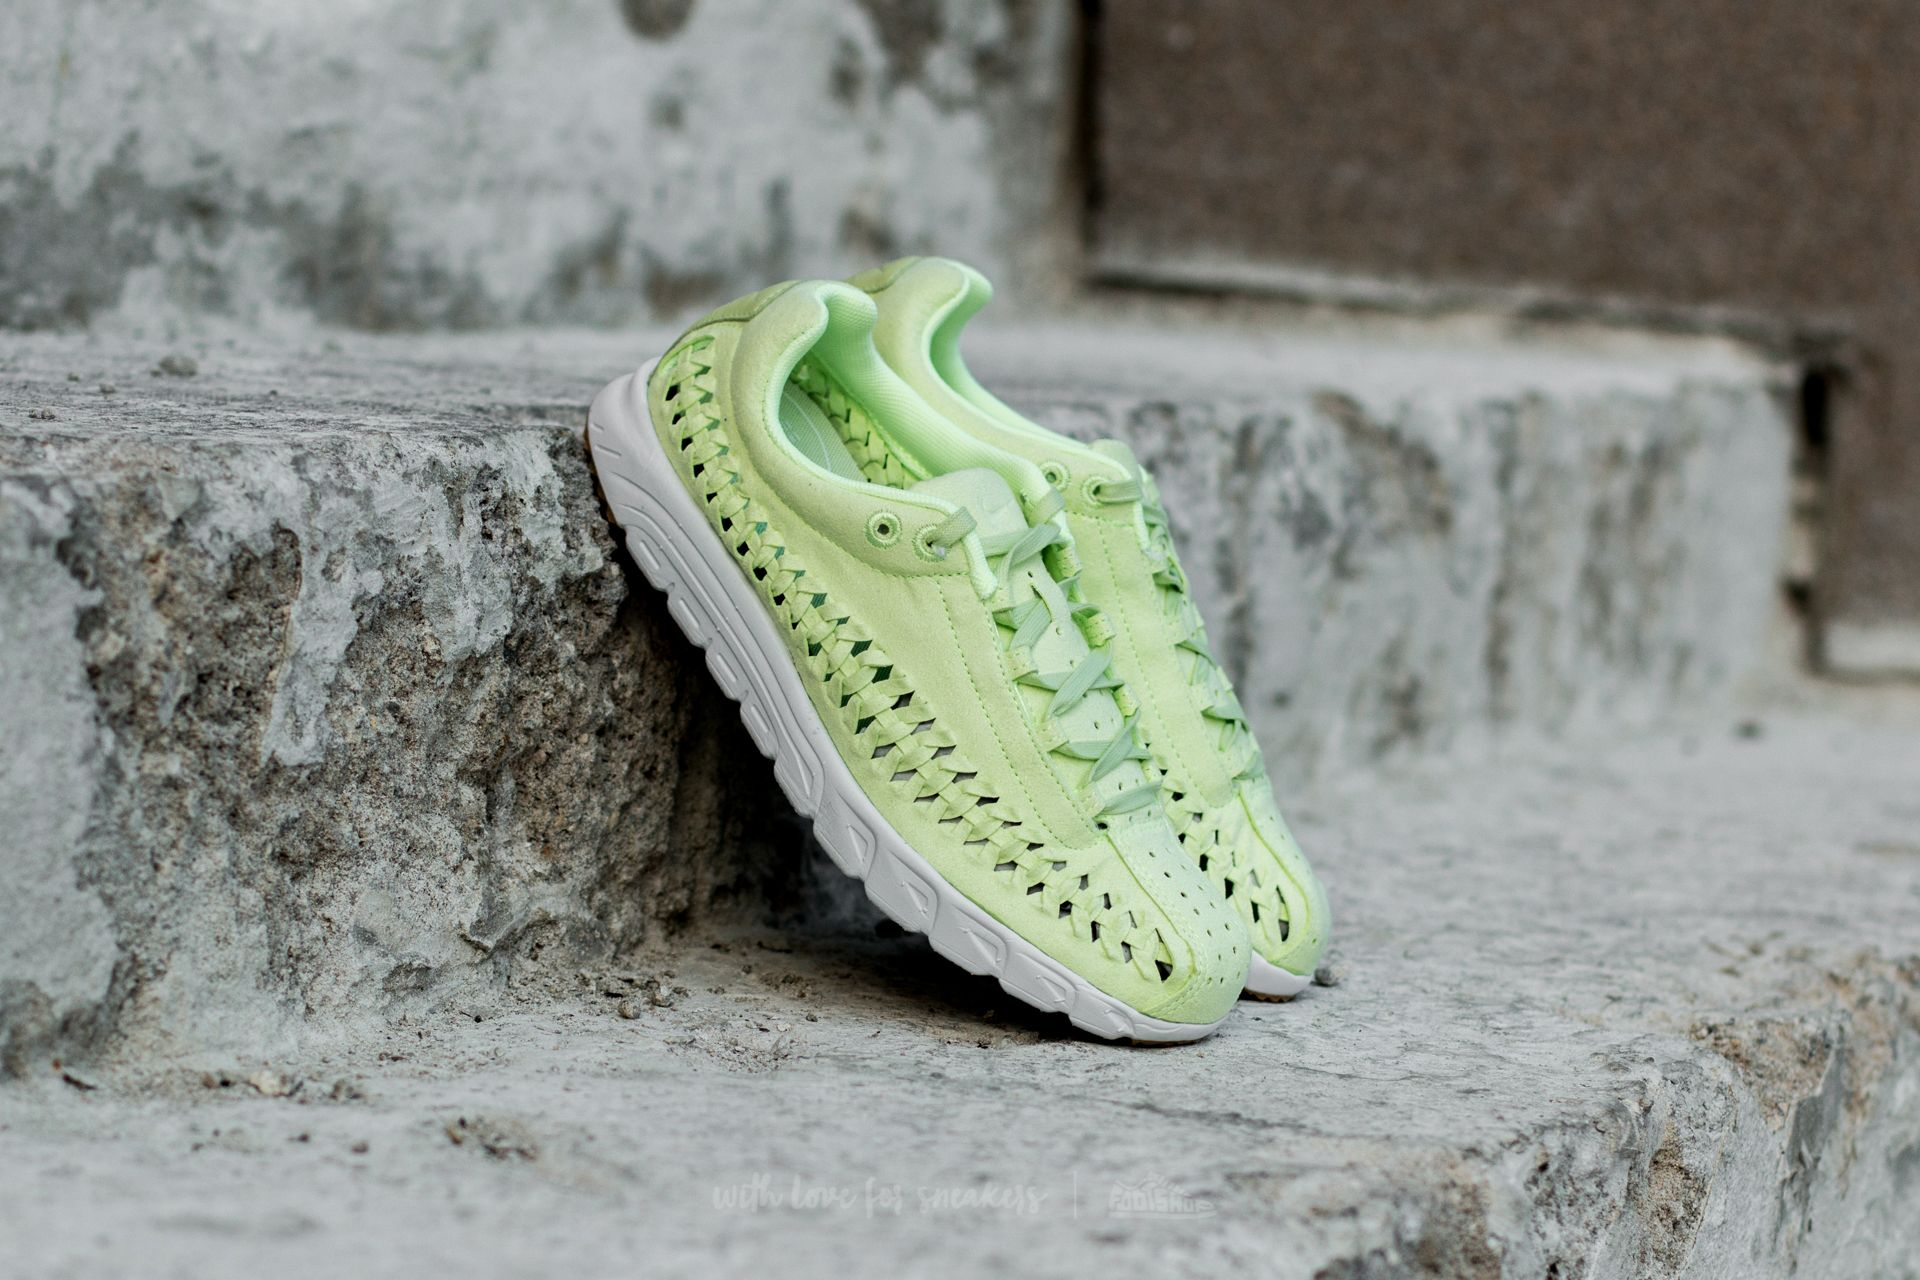 Nike Wmns Mayfly Woven QS